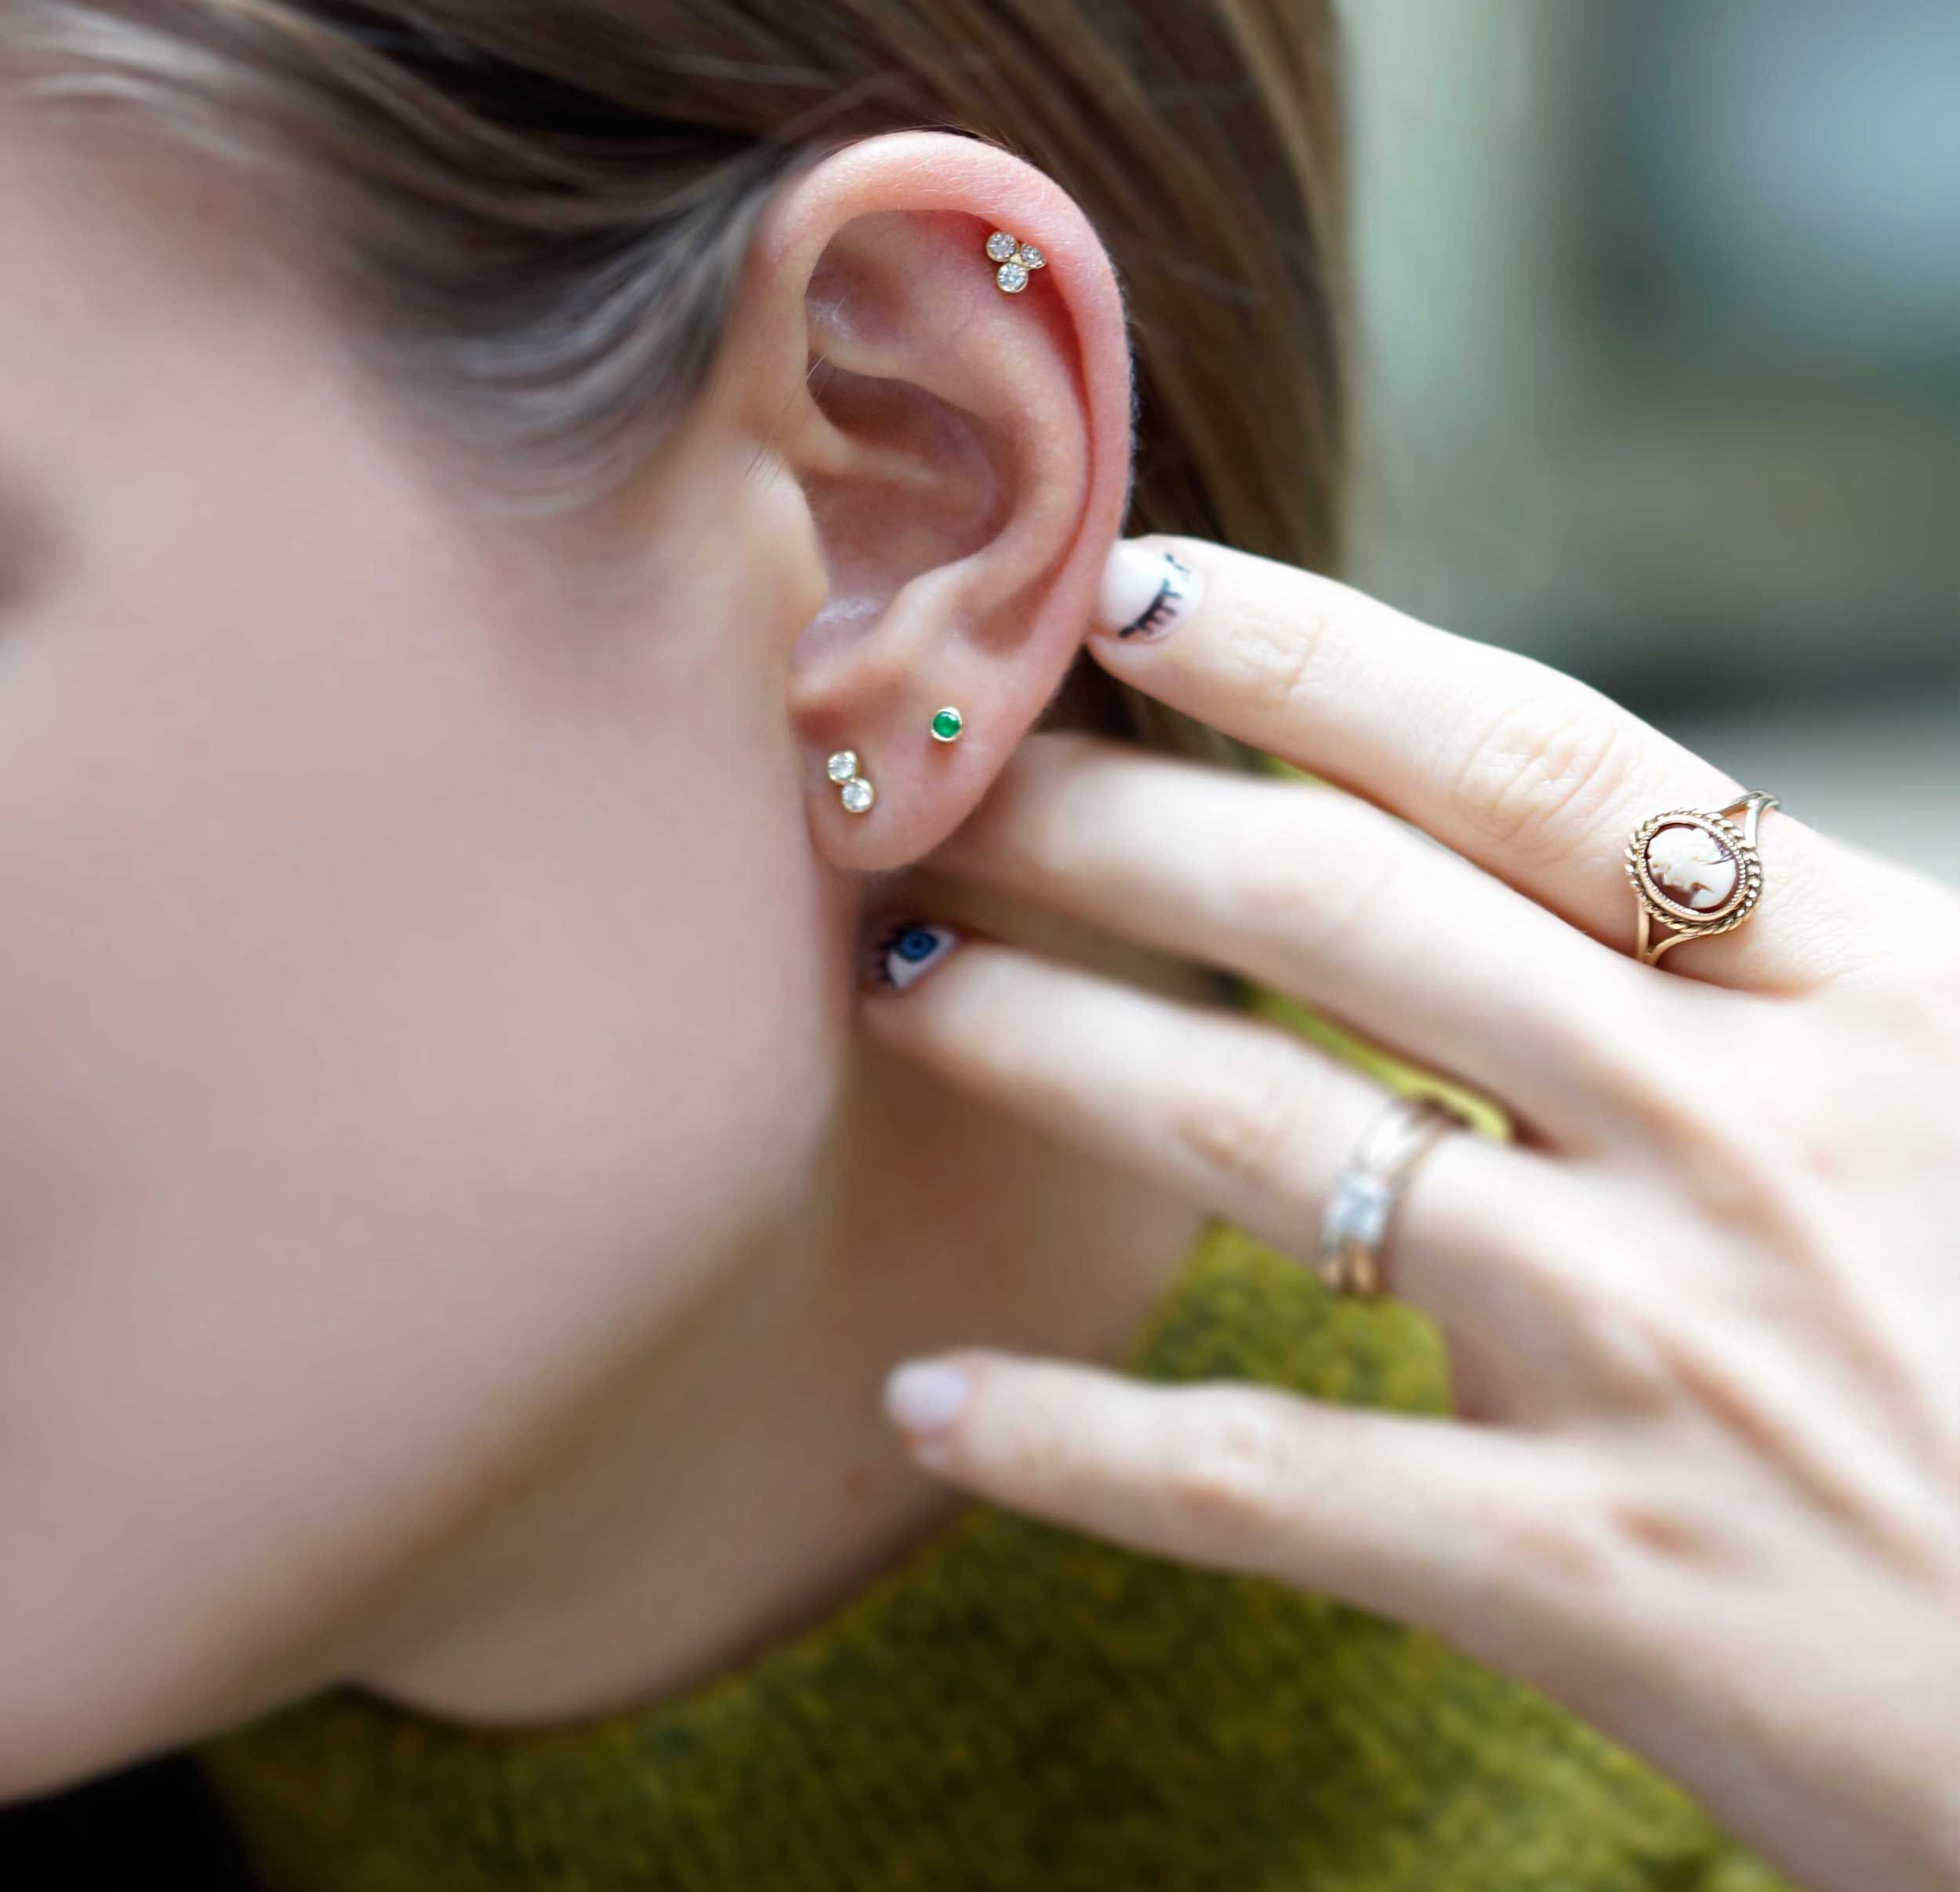 A simple helix and lobe pairing is a subtler way to get in on the trend.